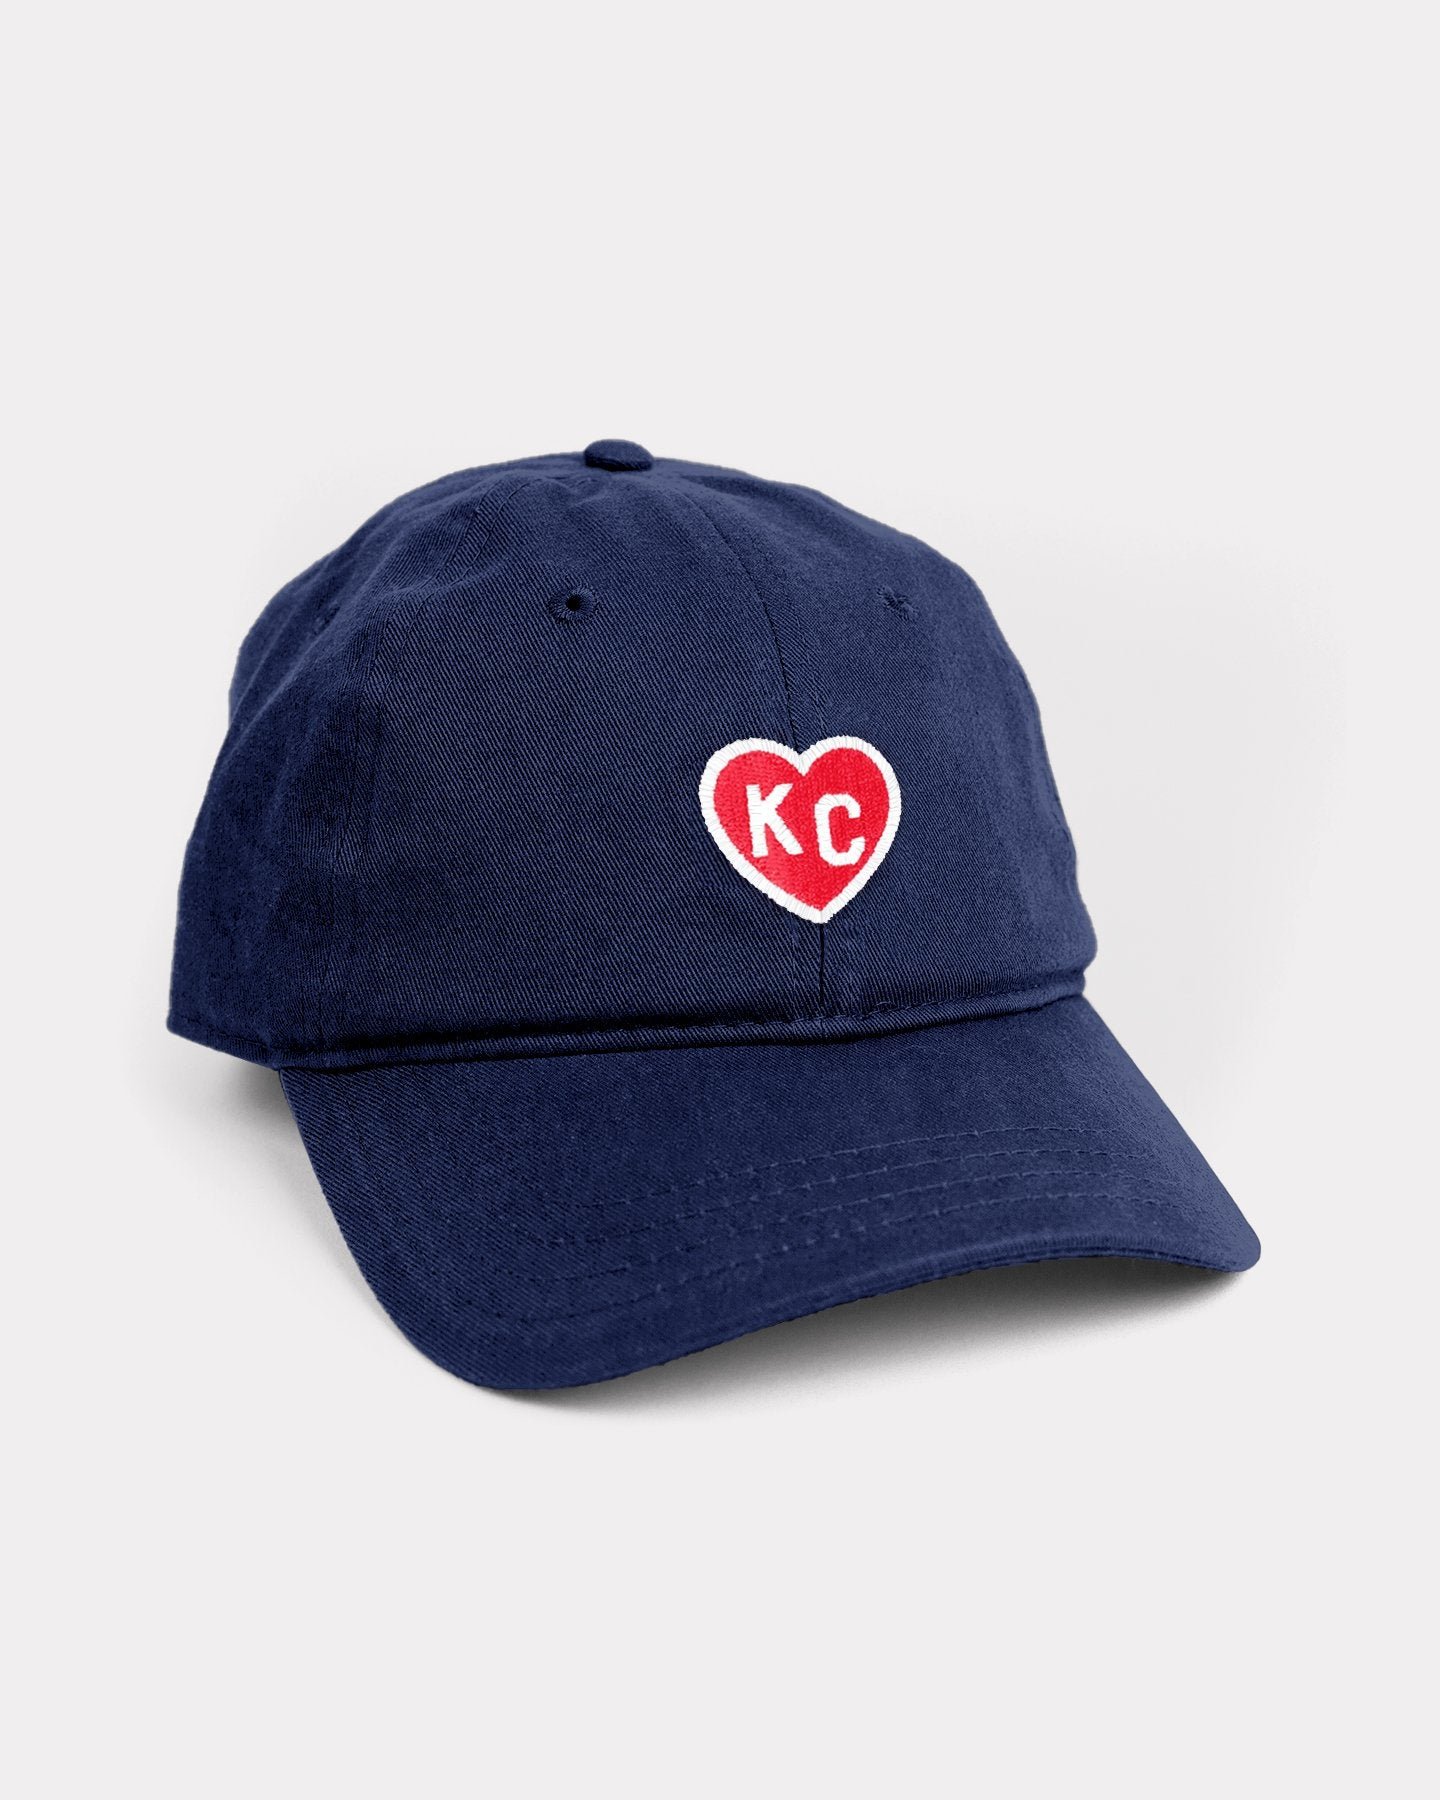 Navy & Red KC Heart Vintage Dad Hat